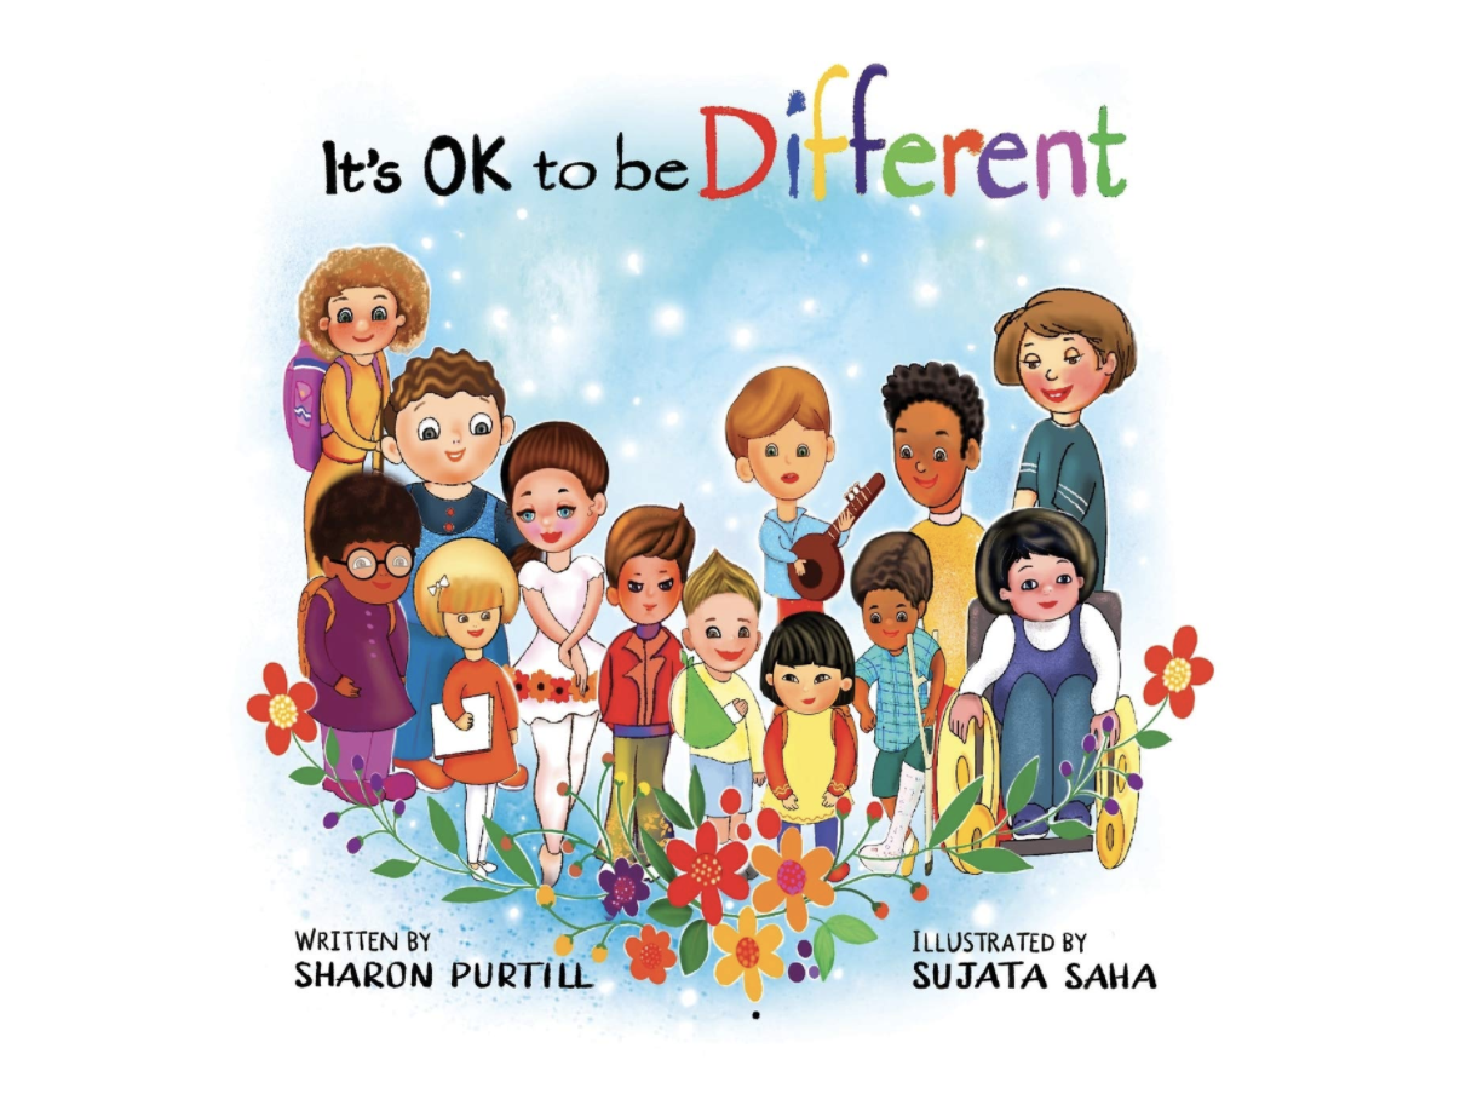 learning diversity and kindness picture book